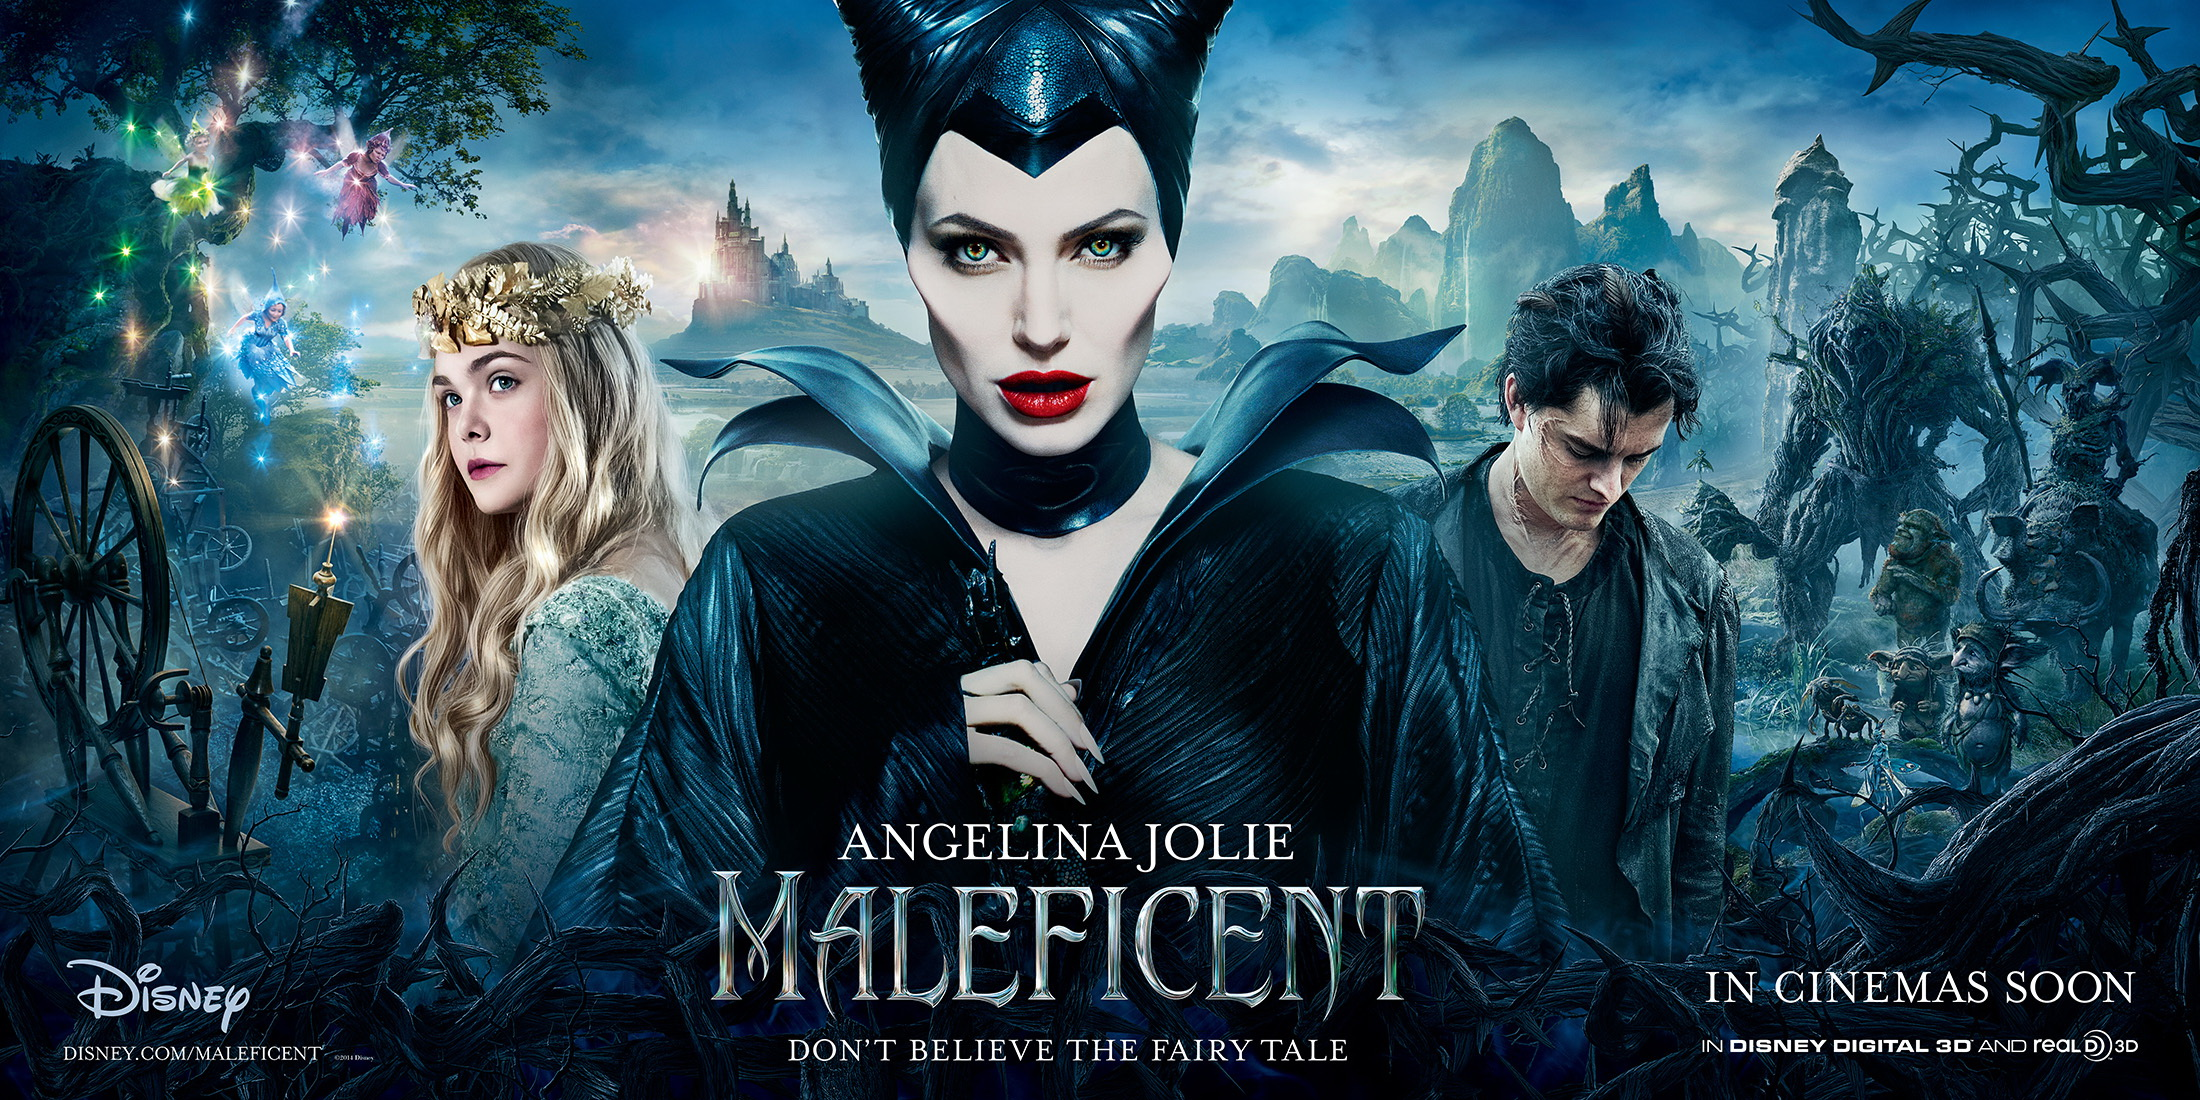 Maleficent Triptych poster